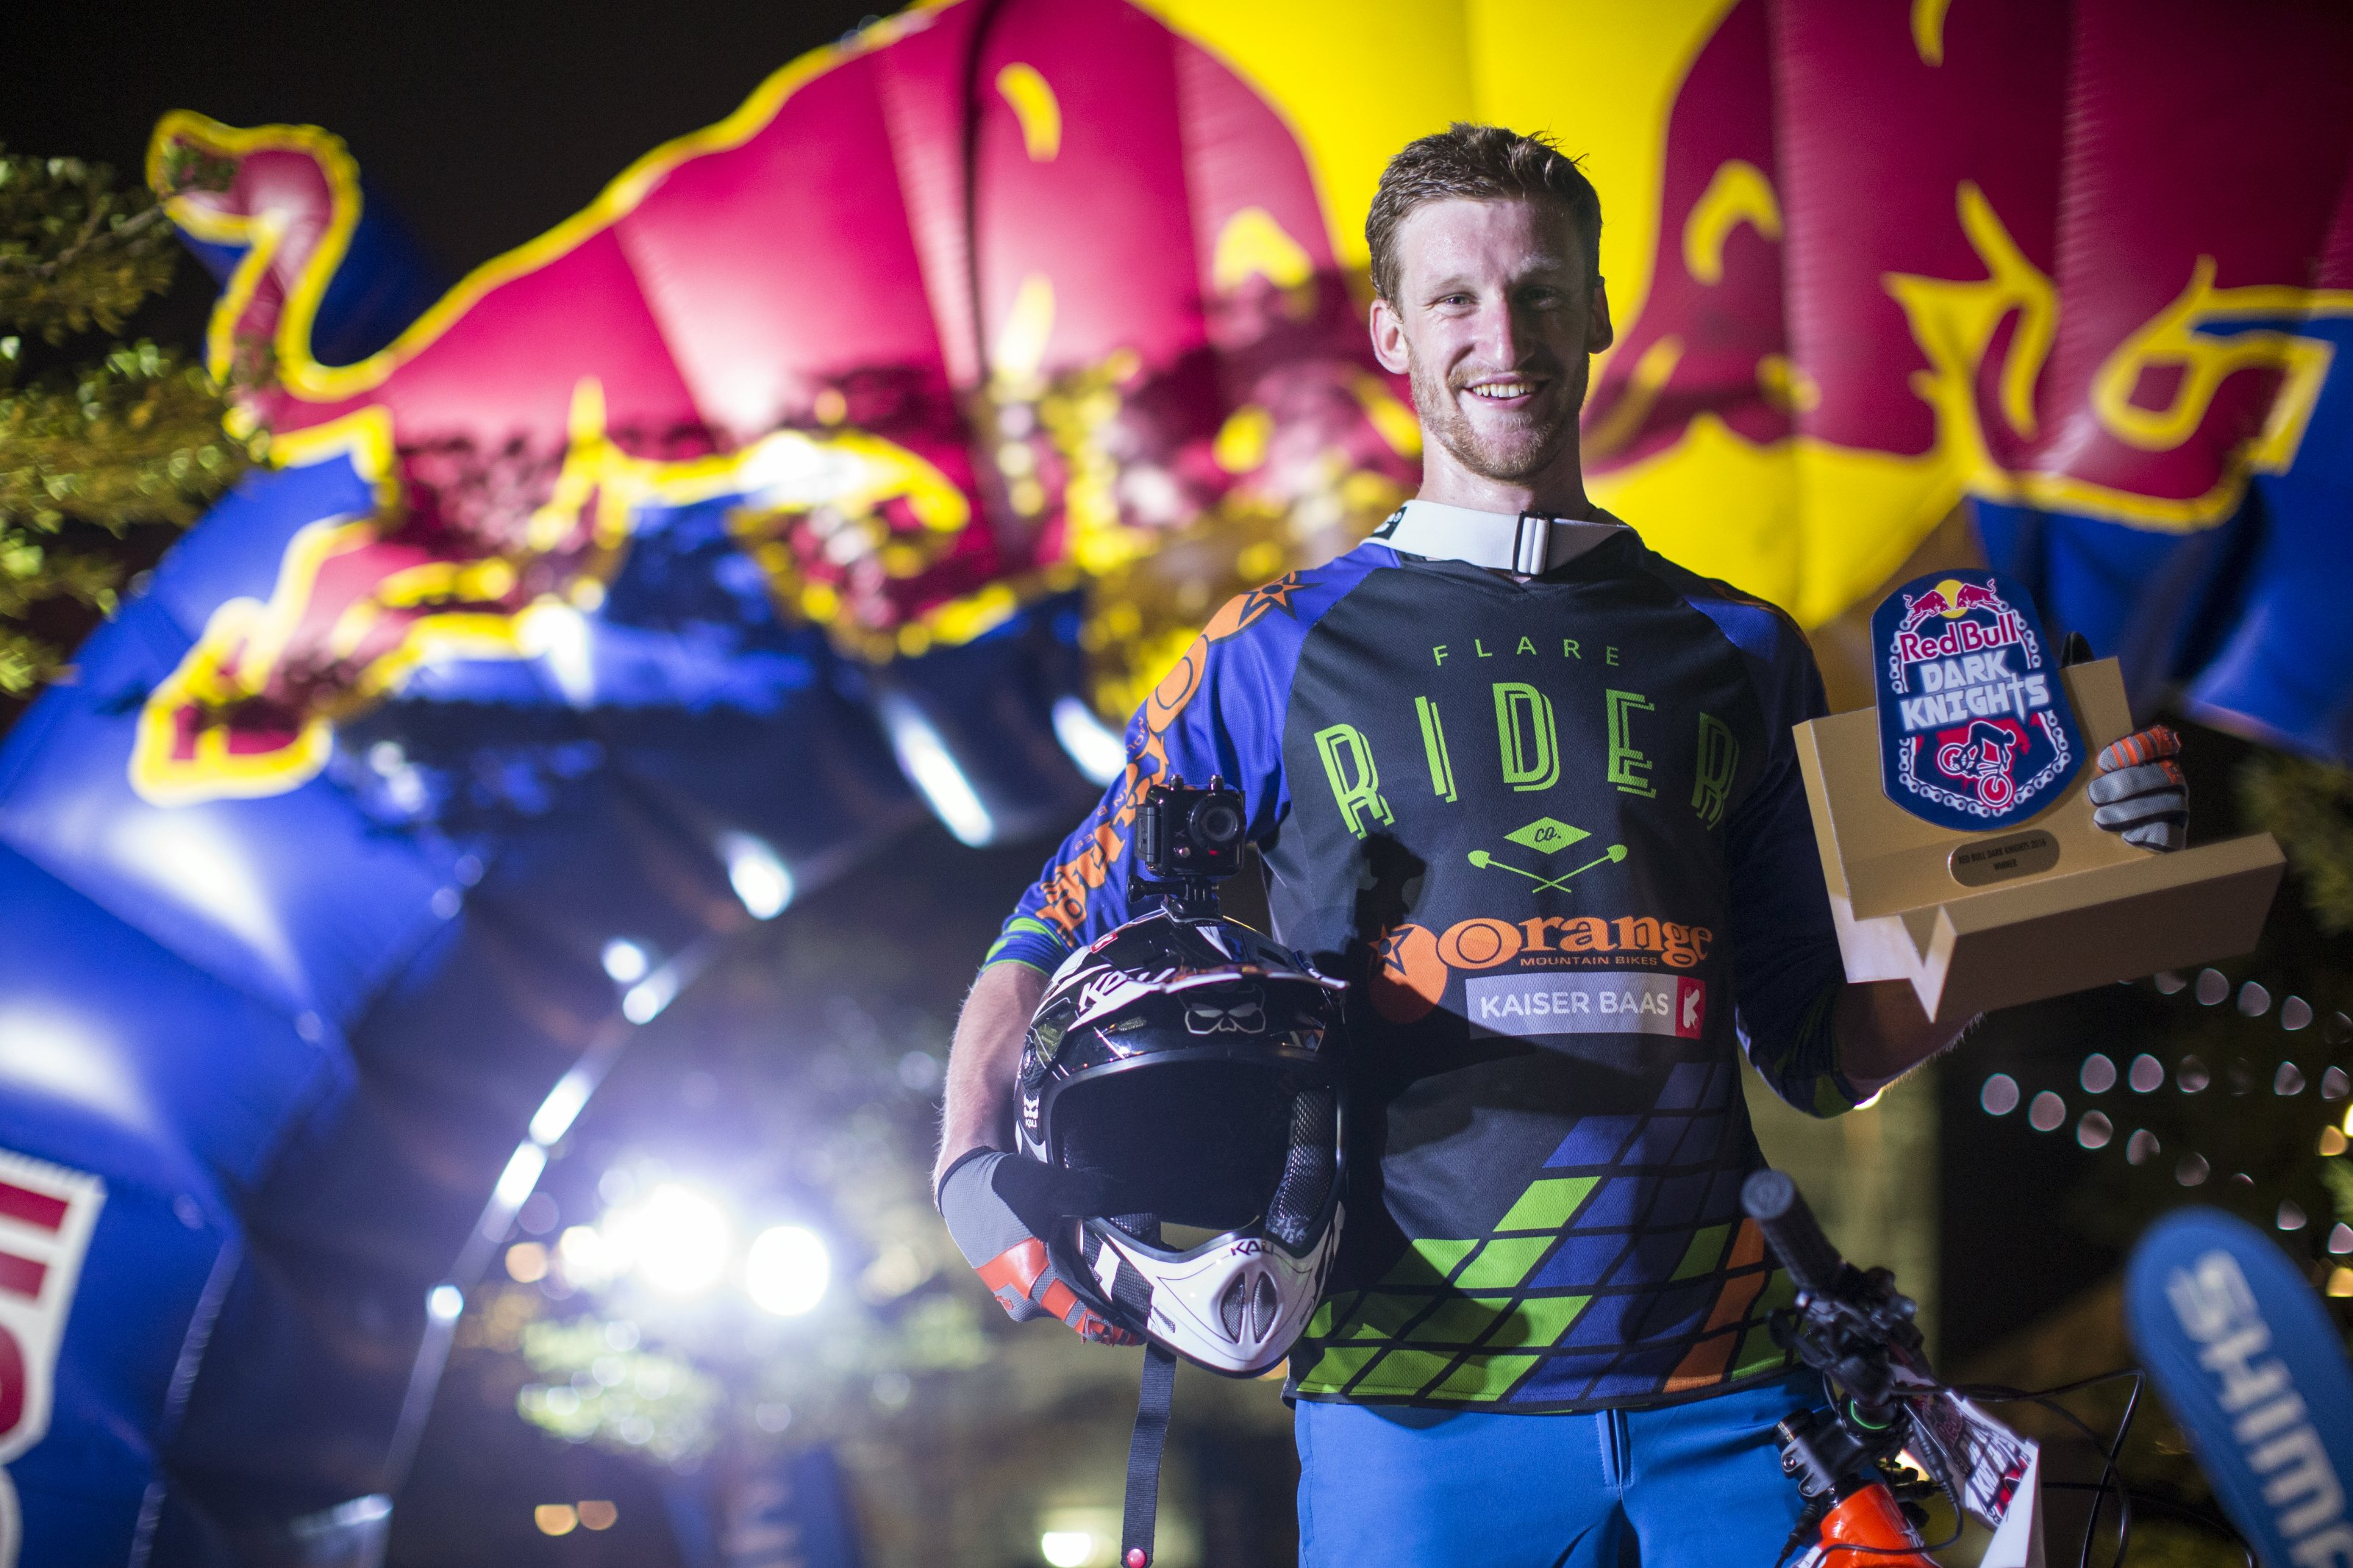 Rio rider Ben Moore shares his journey with us ...